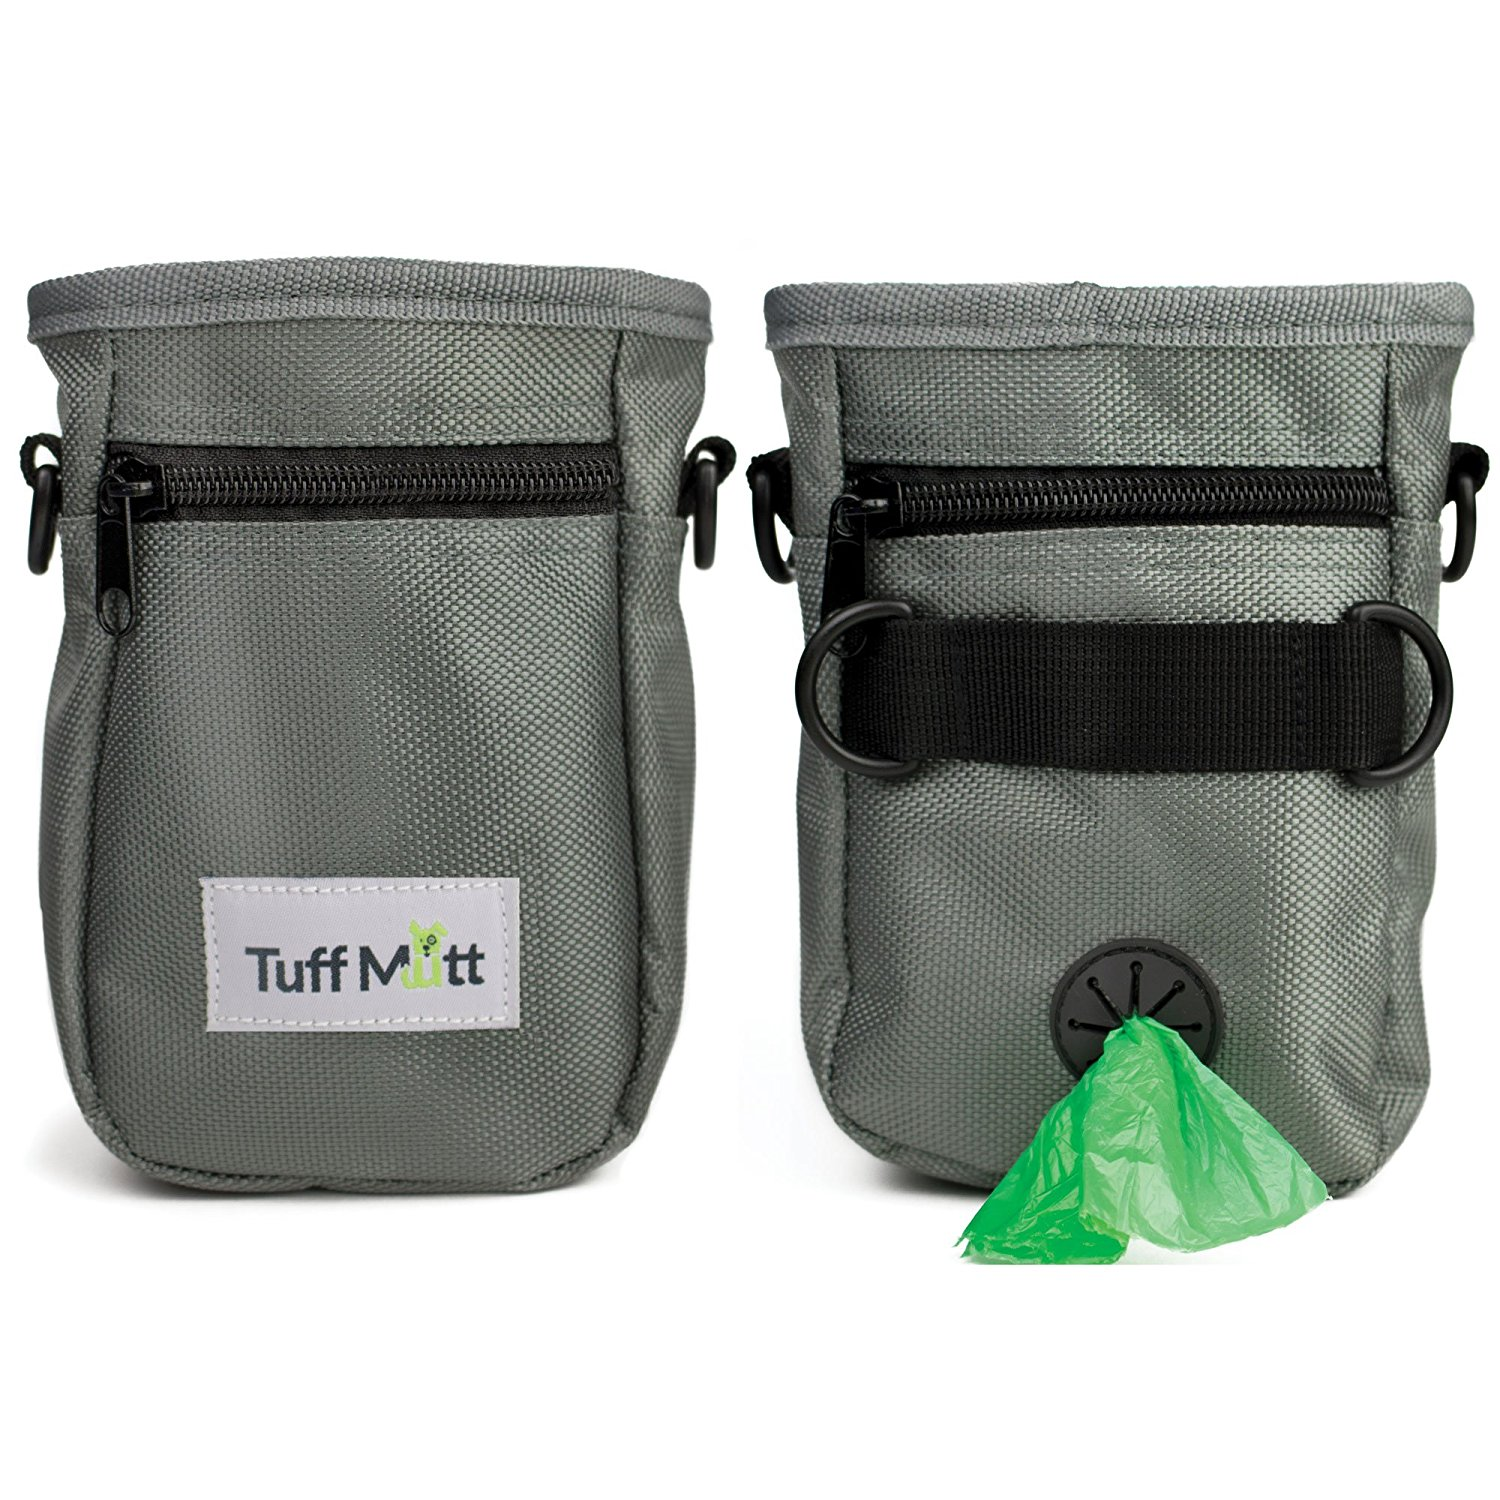 Tuff Mutt Dog Treat Pouch for Training, Carries Treats and Toys, Built-In Poop Bag Dispenser